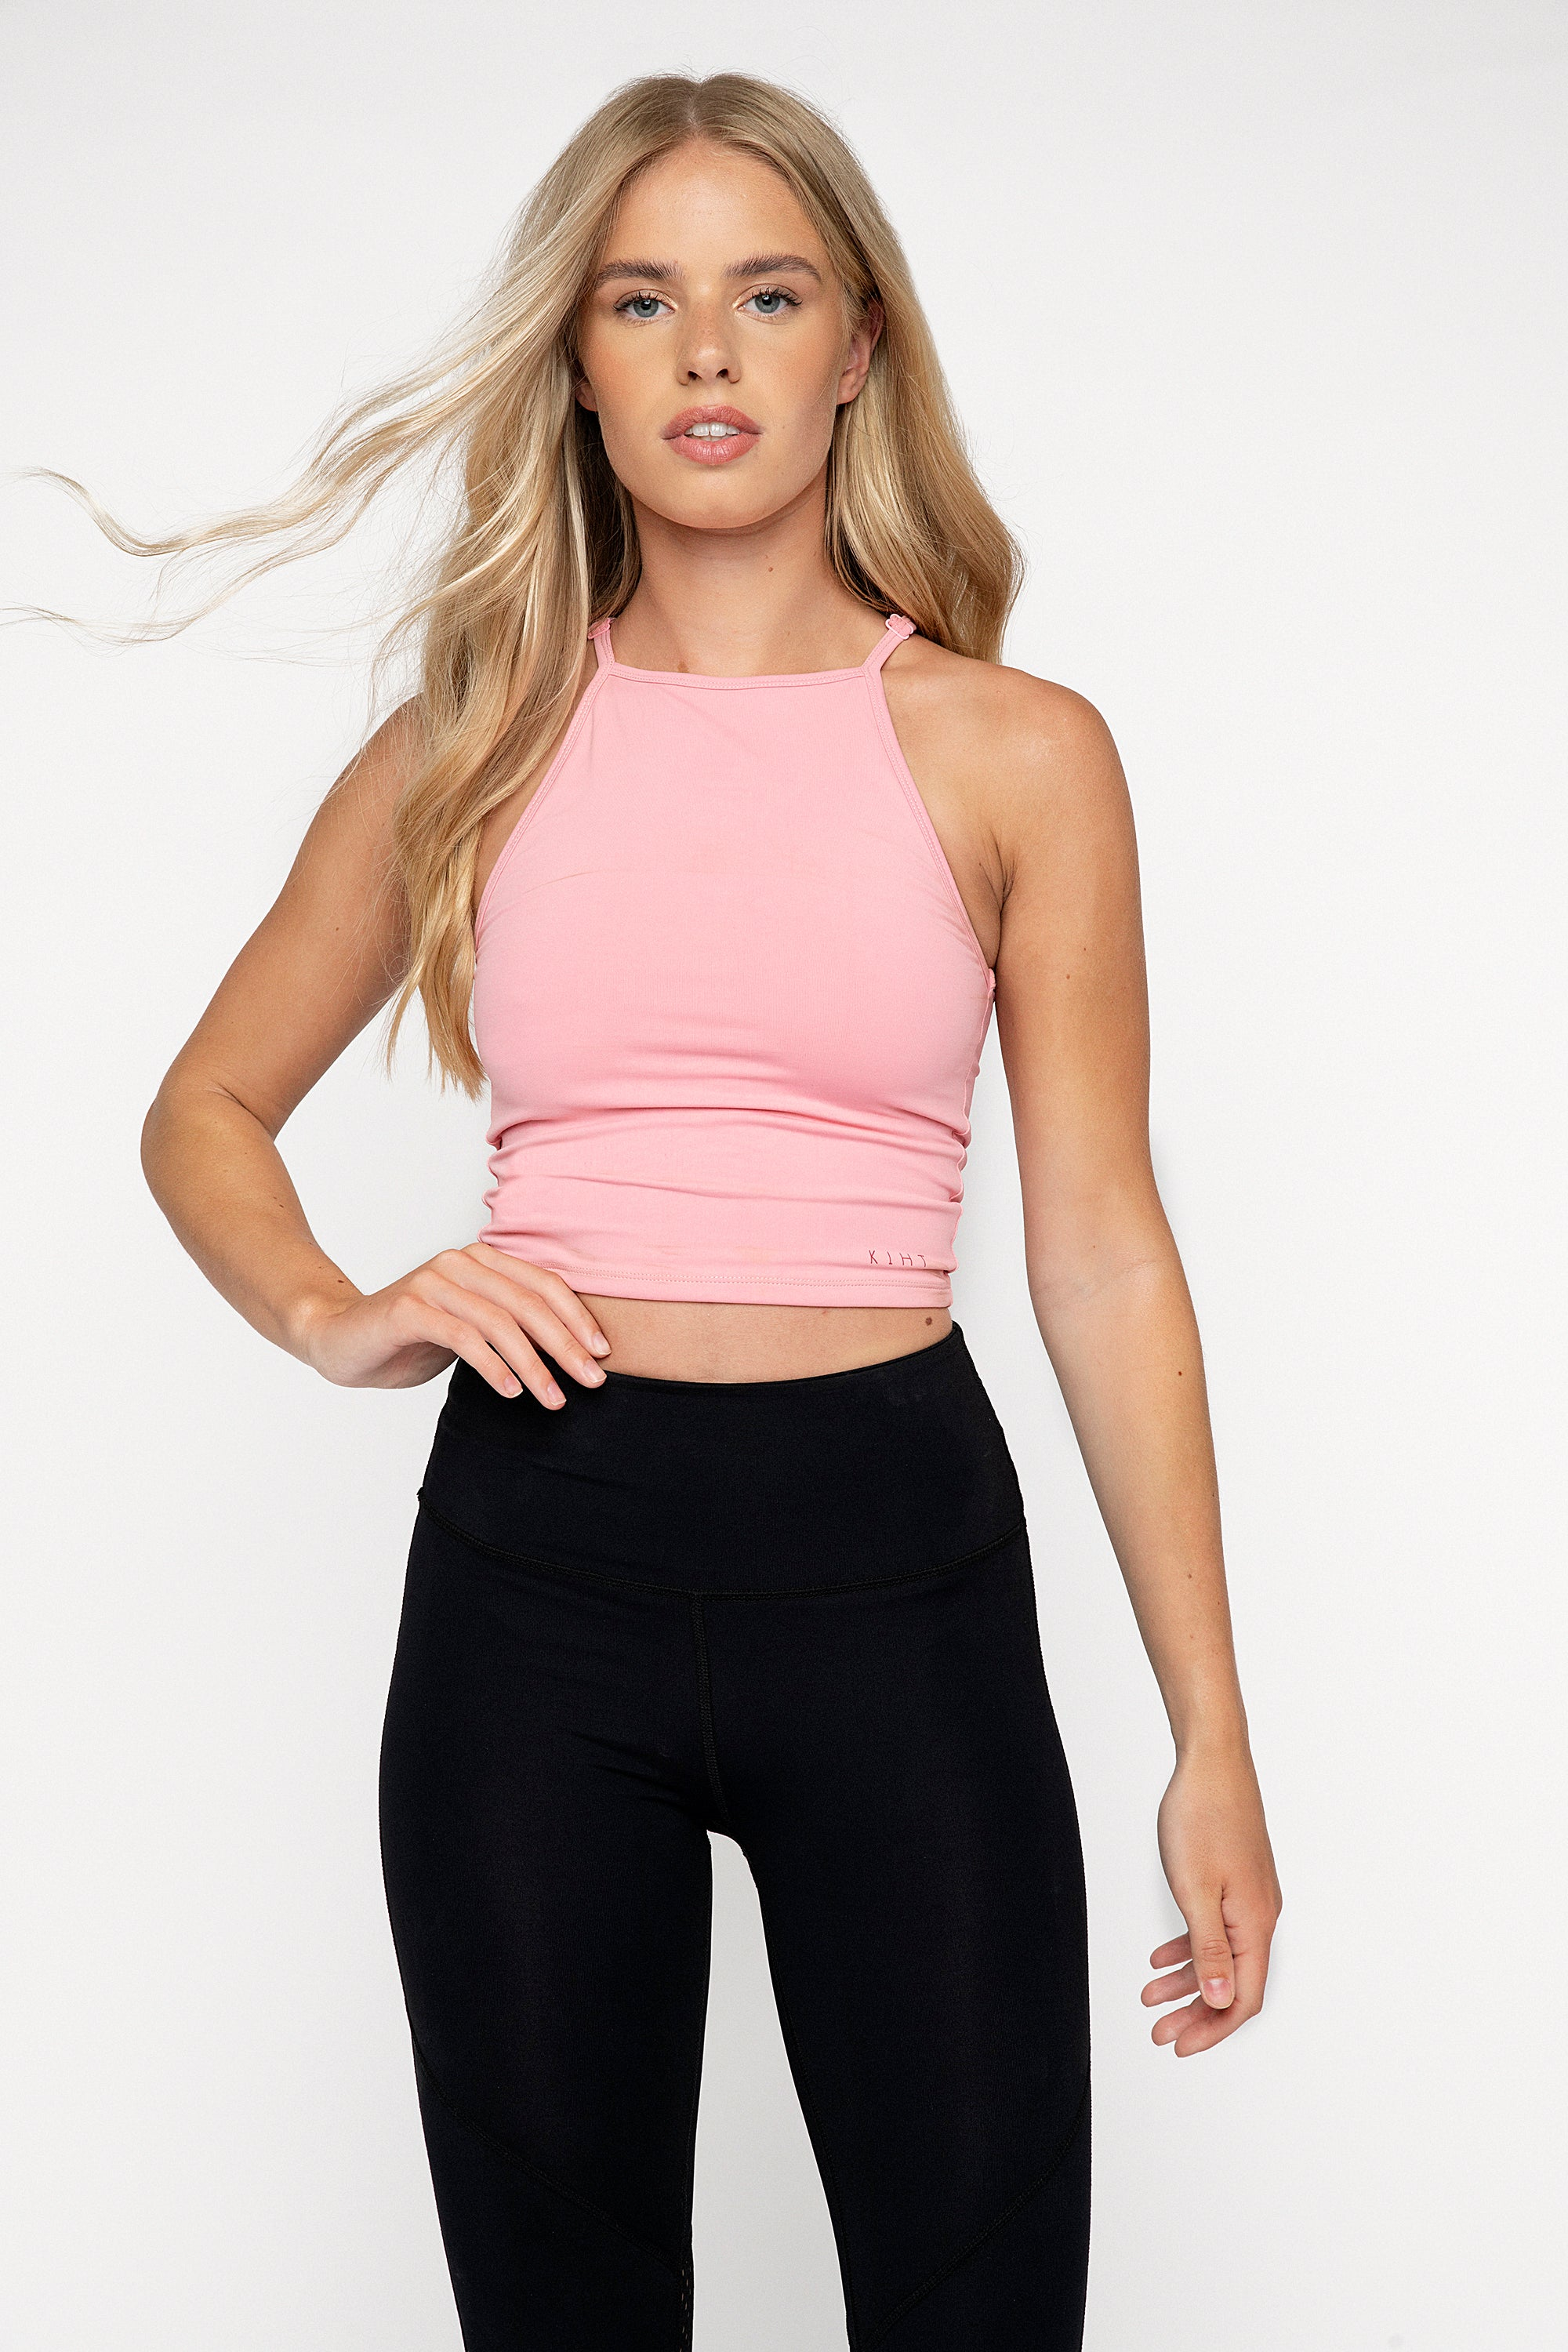 90's style high neck fitted gym top. Mid crop length with adjustable straps, double lined for support. Pink Lemonade colour.